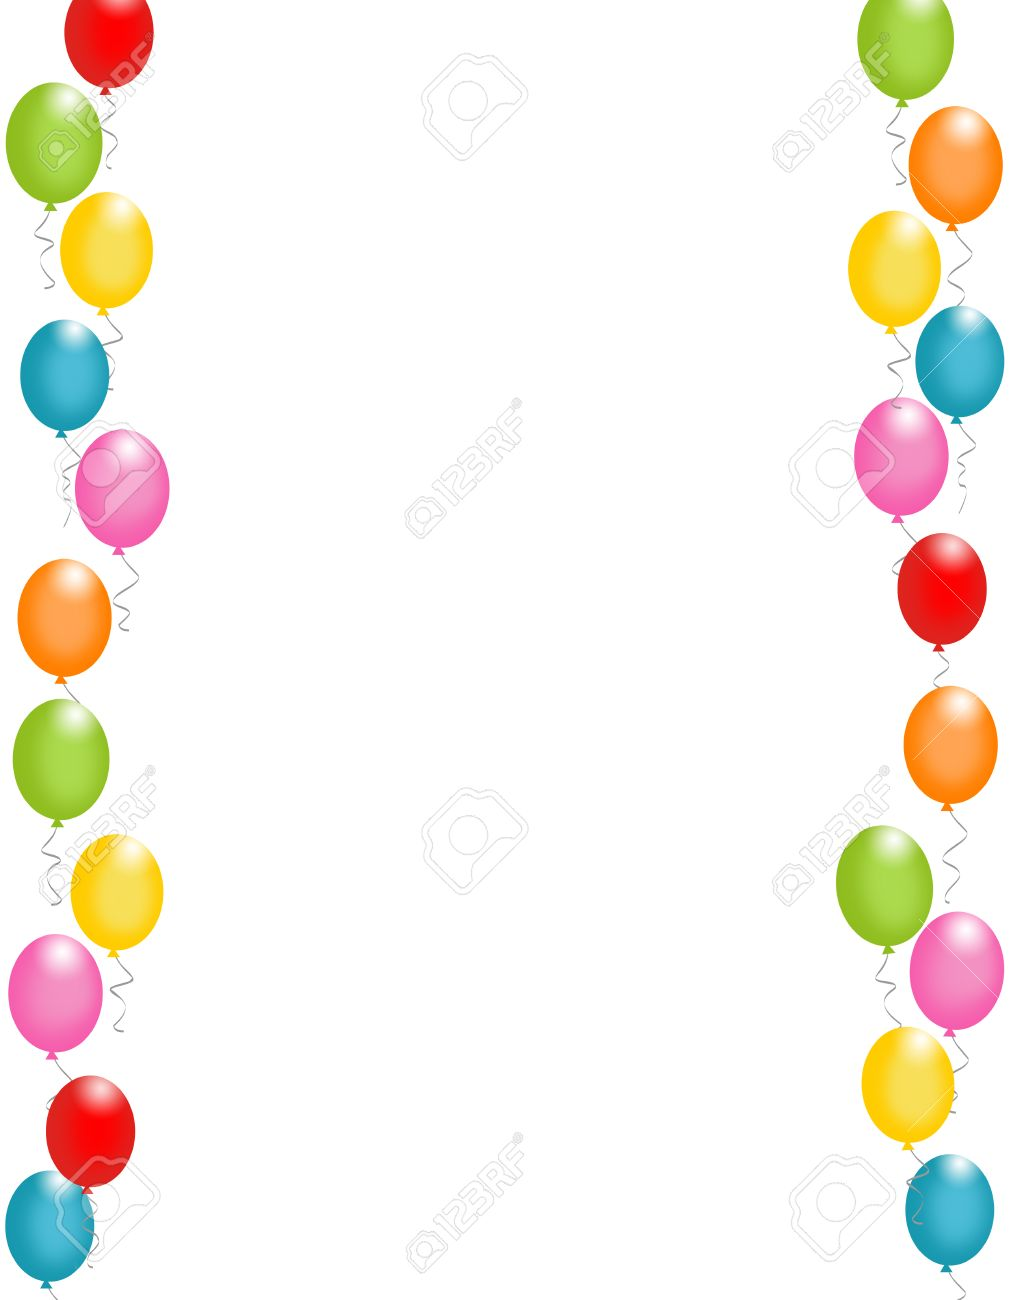 birthday card borders free ; 38747998-colorful-balloons-border-frame-illustration-for-birthday-cards-and-party-backgrounds